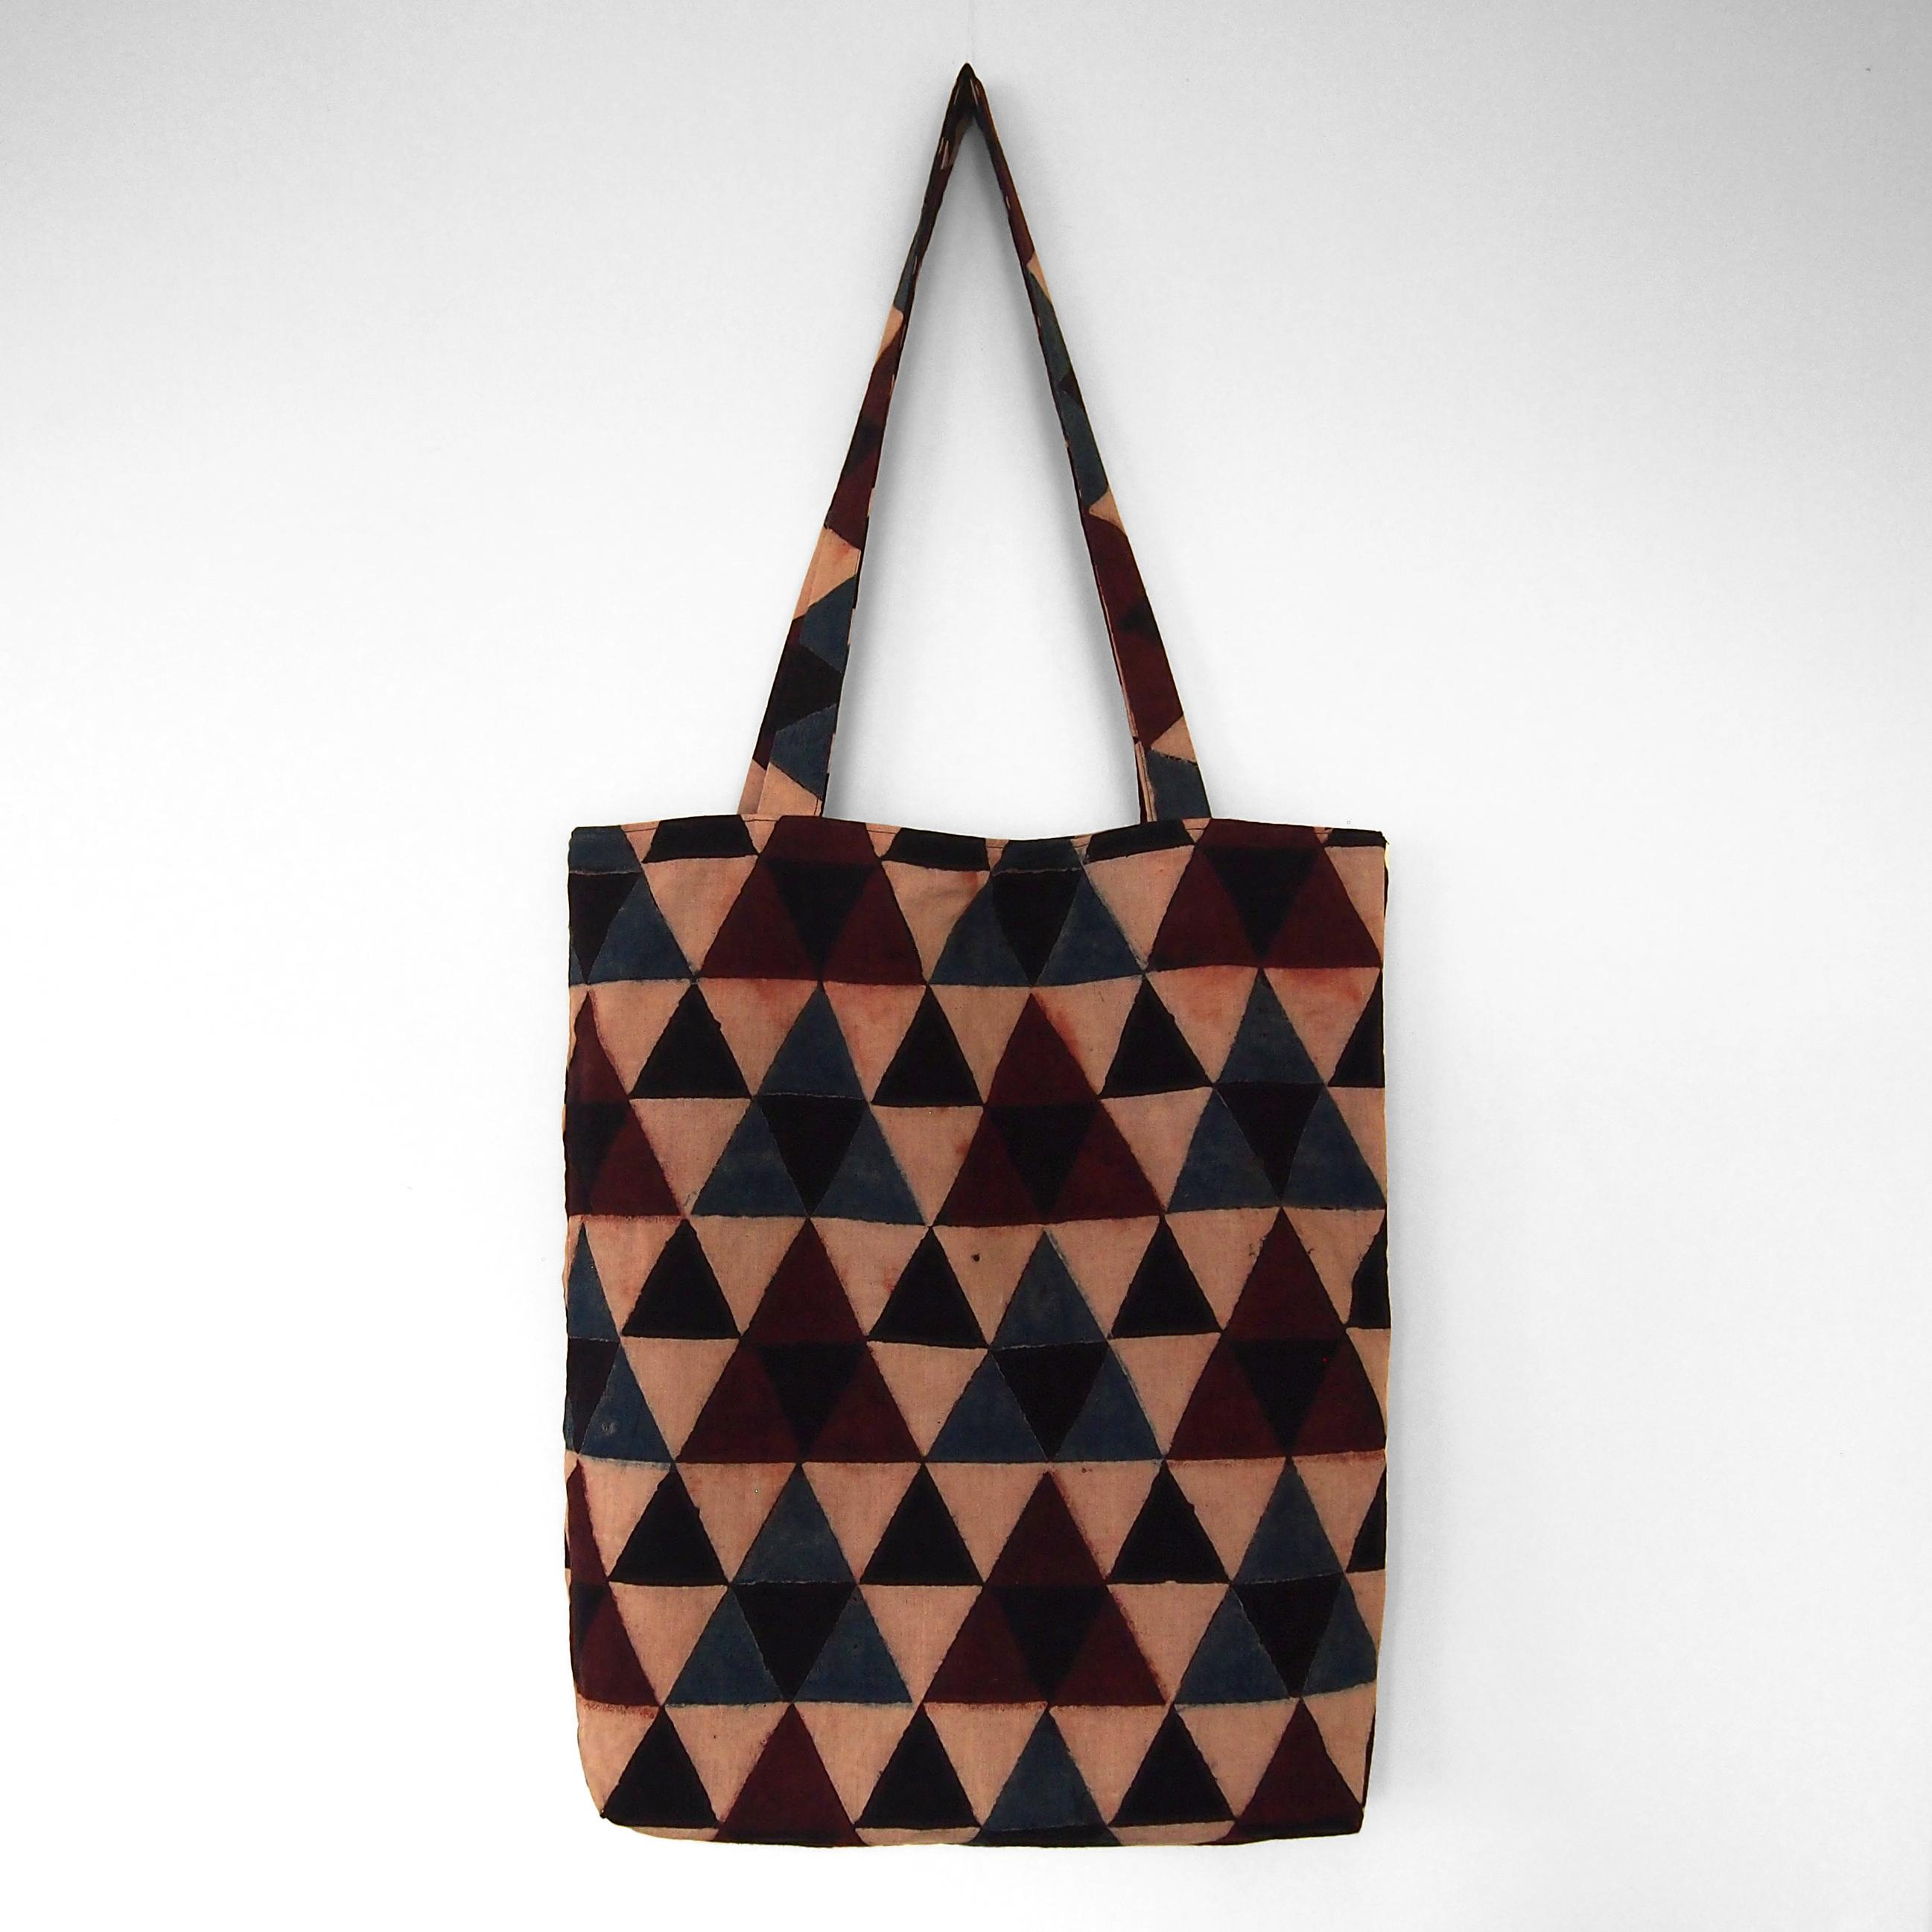 block printed tote bag, cream, black blue red triangle design, lined with black cotton, closed